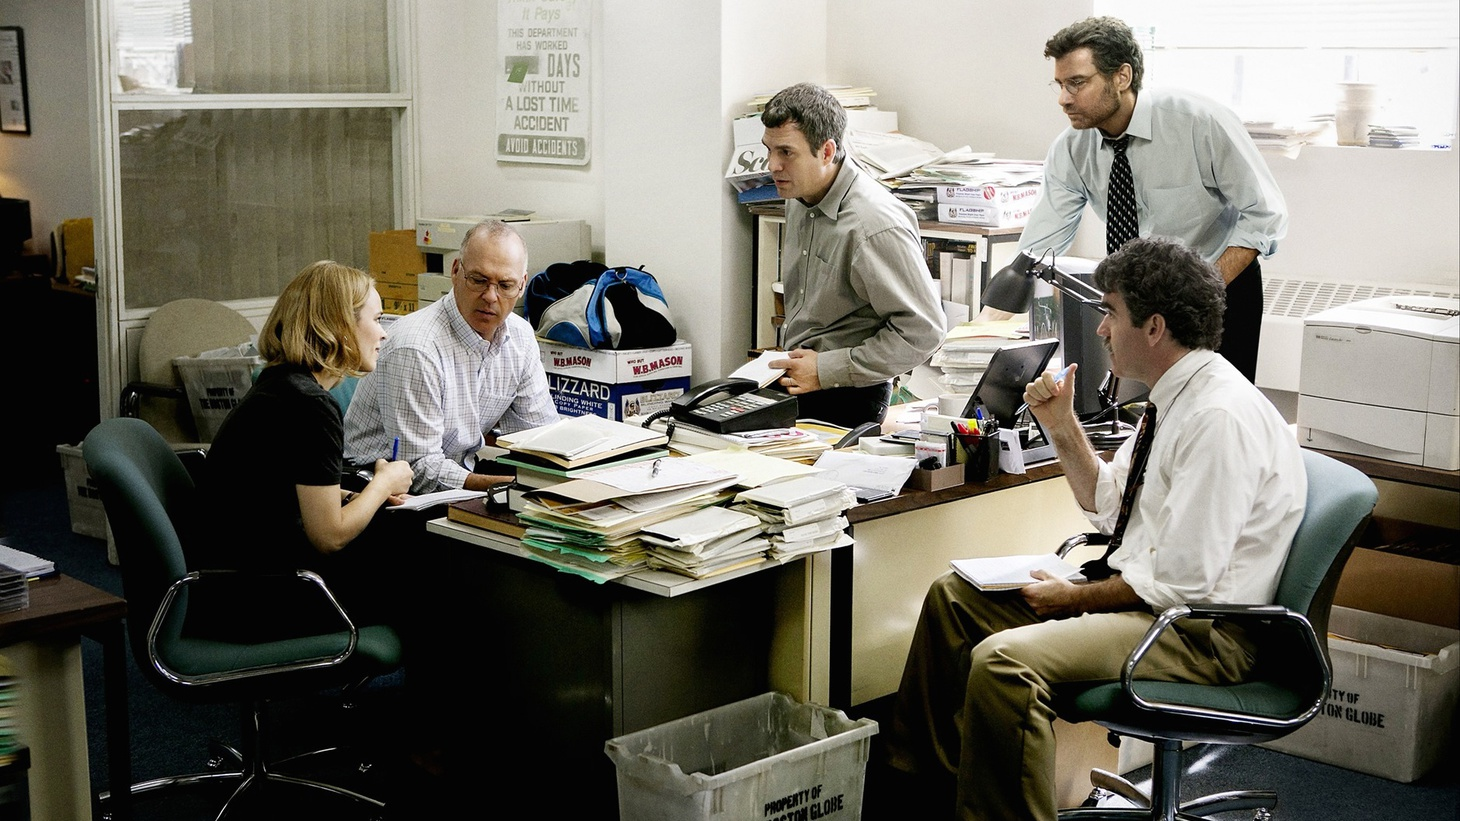 Despite a shrinking budget and difficult subject matter, director Tom McCarthy pulled together a stellar ensemble including Mark Ruffalo, Michael Keaton and Rachel McAdams to portray the unglamorous work of investigative reporting for his new movie Spotlight.